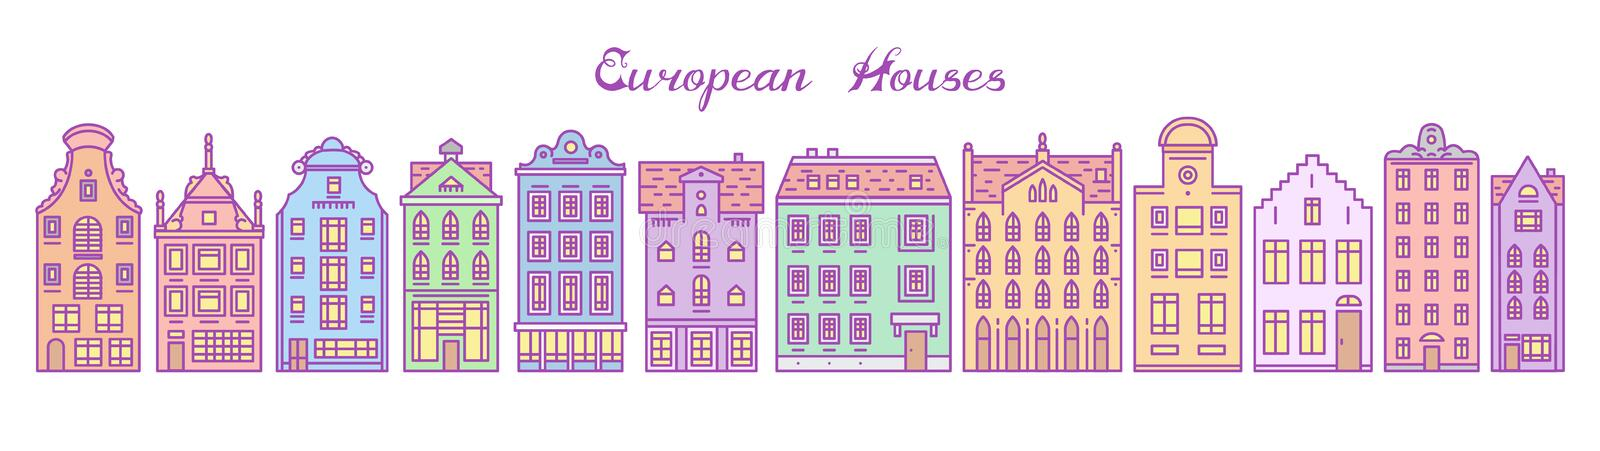 Europe house and apartments. Set of cute architecture in Amsterdam. Neighborhood with classic street and cozy homes vector illustration